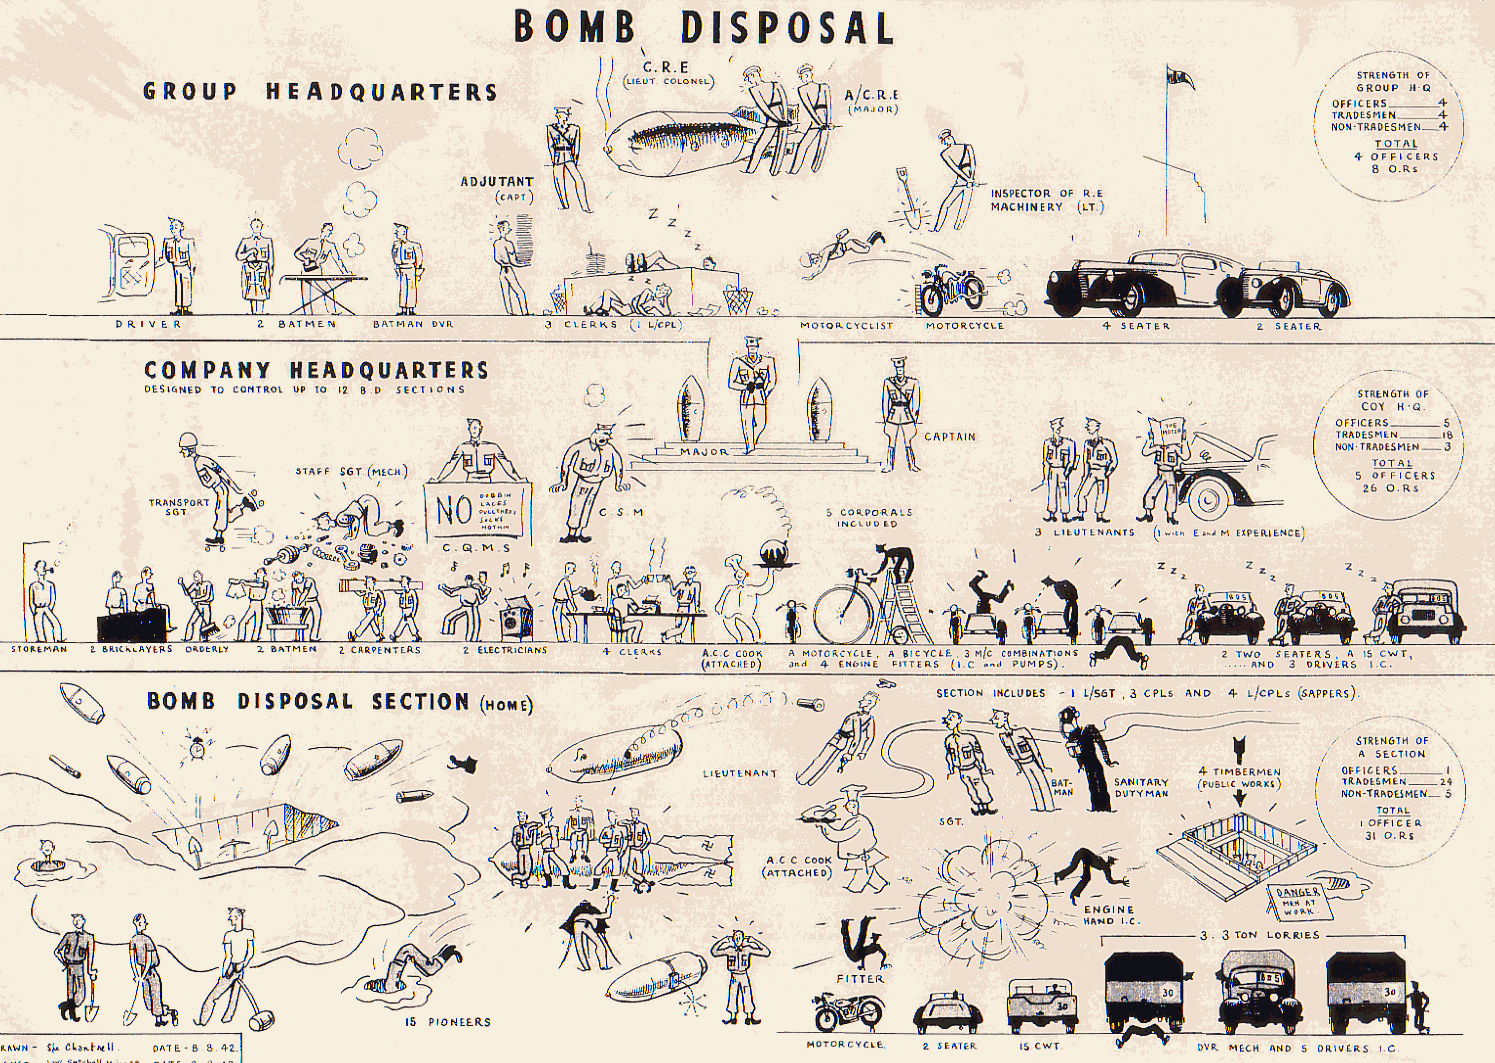 RE Bomb Disposal Group Orbat from WW2 – Drawn by Spr Chartwell(!) and signed off by Maj JW Setchell RE 8th August 1942